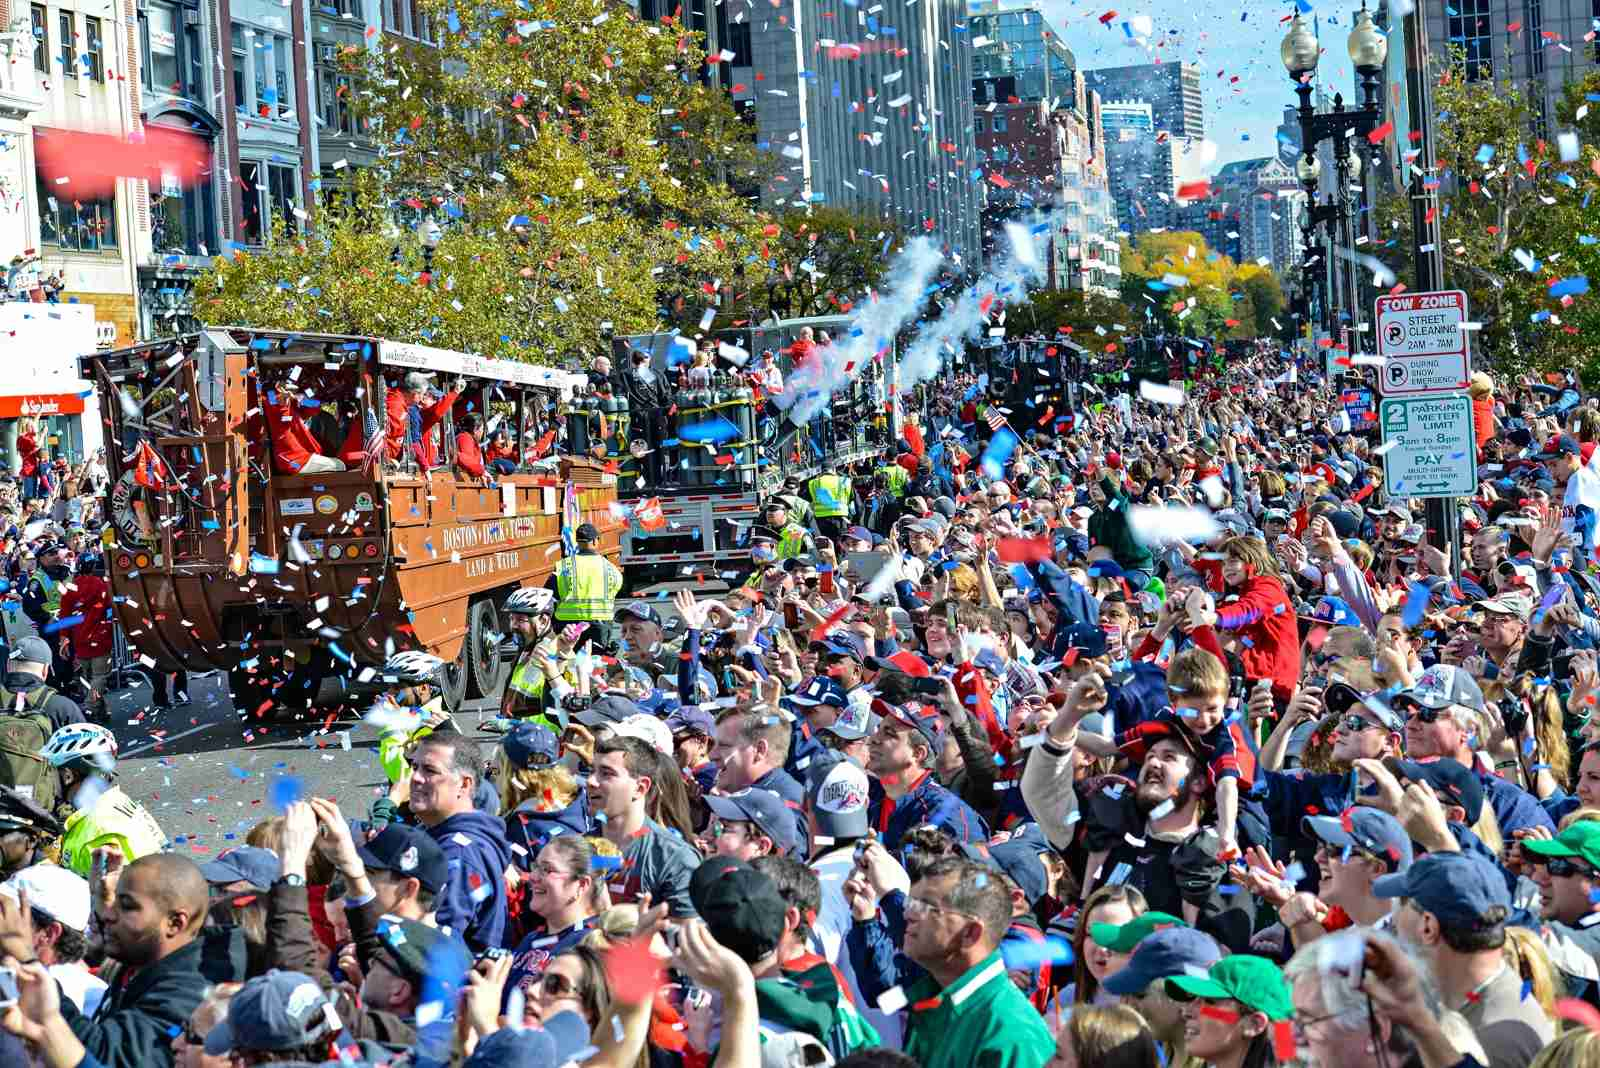 People take sports, especially baseball, very seriously in Boston, as you can see here at the Boston Red Sox World Series victory rally. (Photo by Rick Friedman/Corbis via Getty Images)